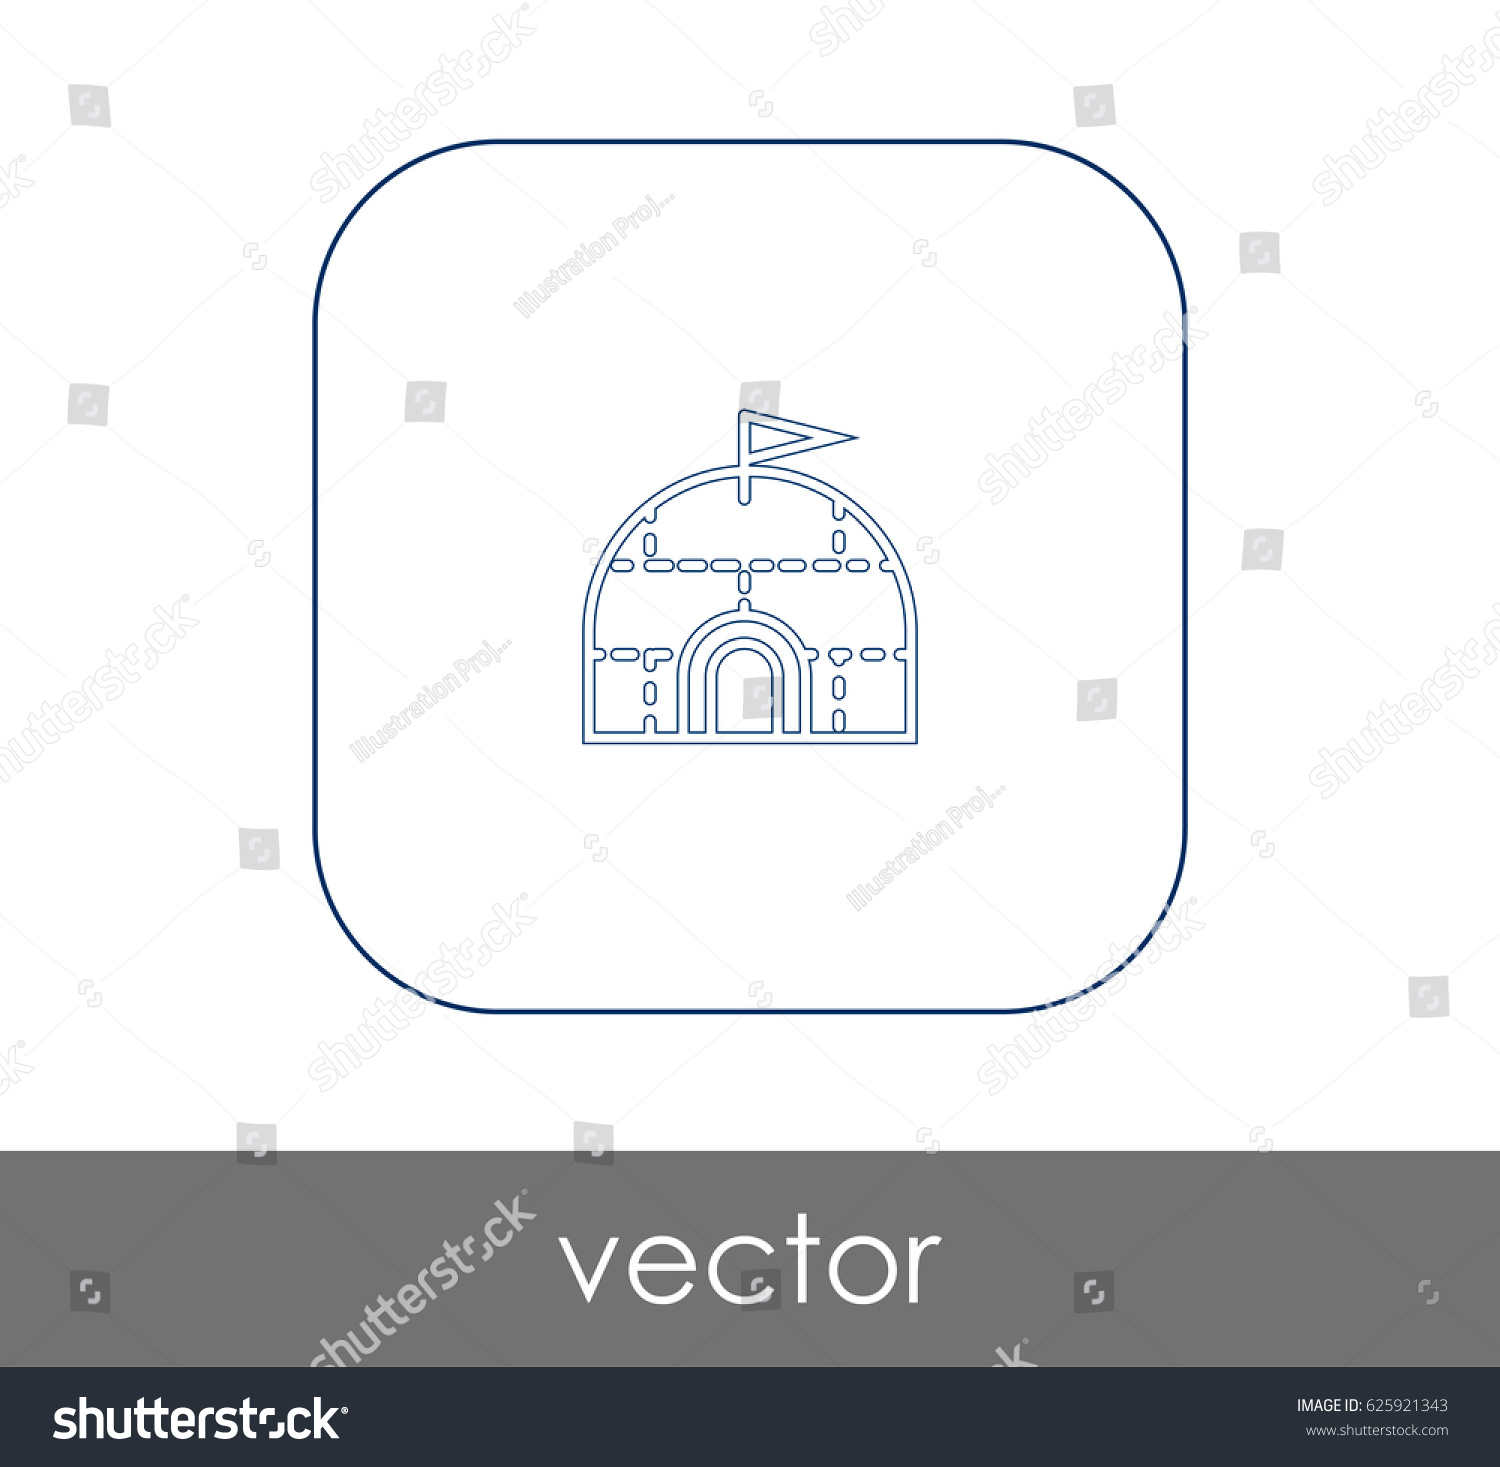 Igloo icon stock vector 625921343 shutterstock igloo icon pooptronica